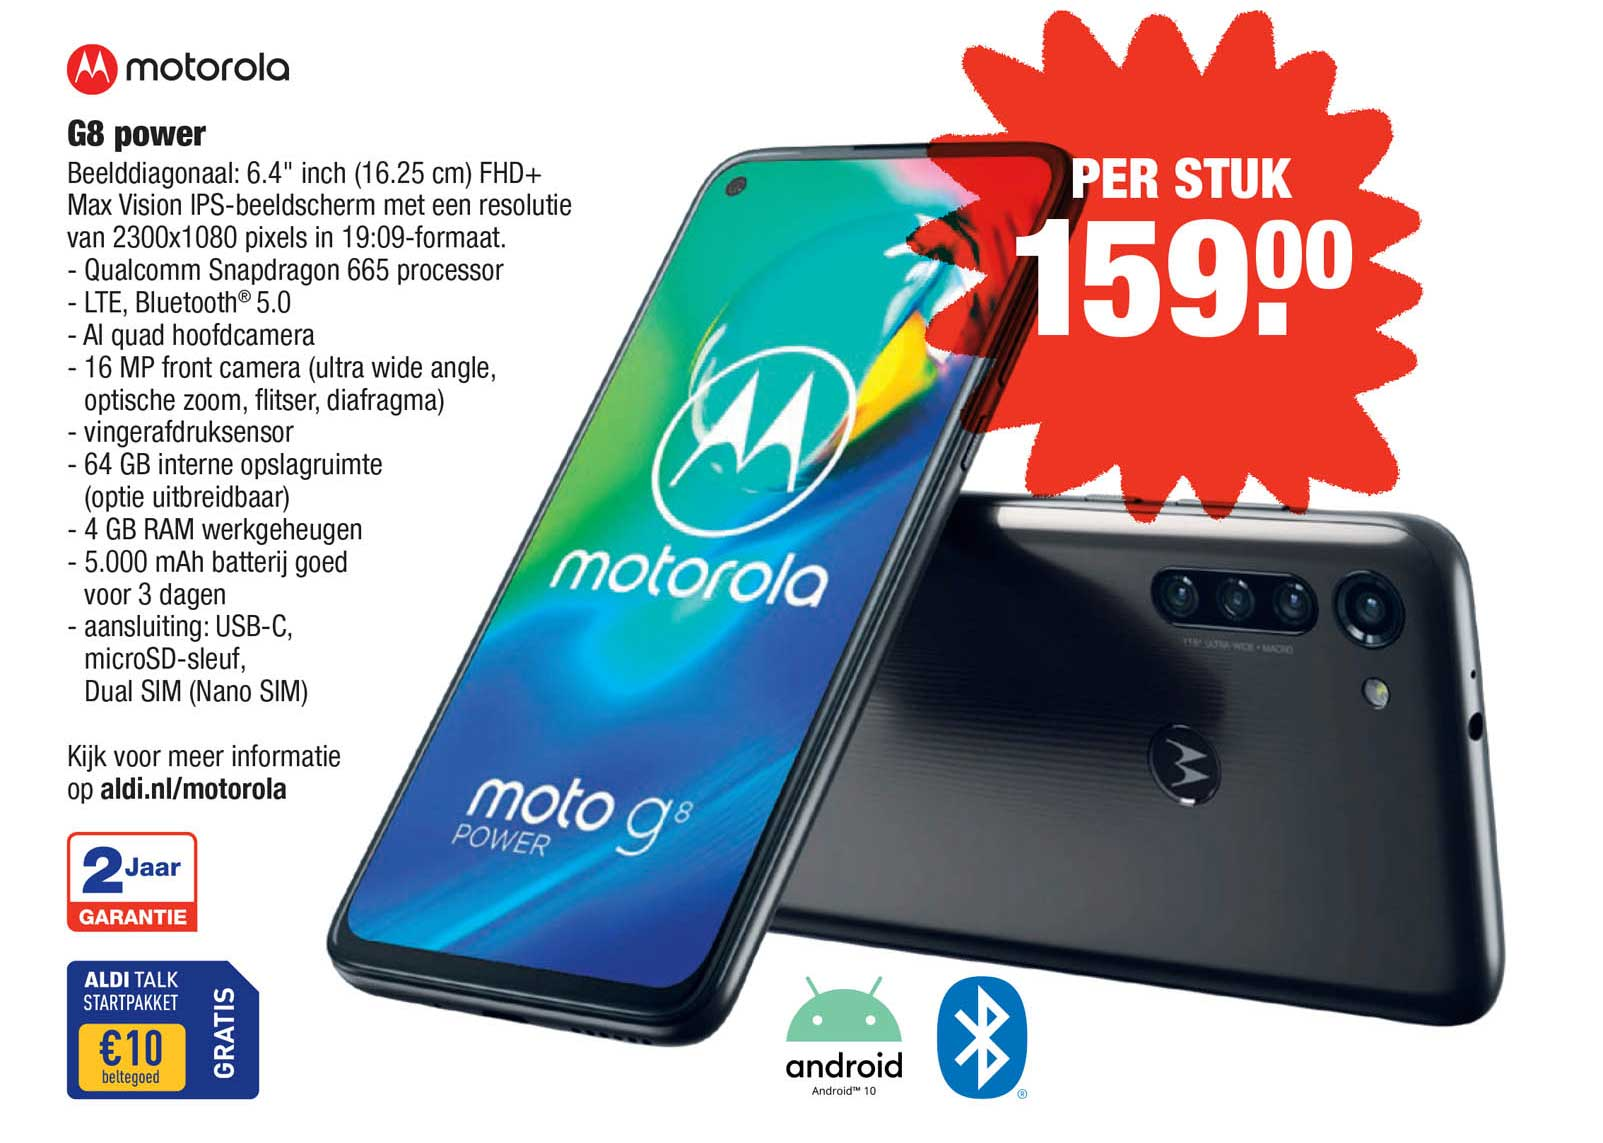 ALDI Motorola G8 Power